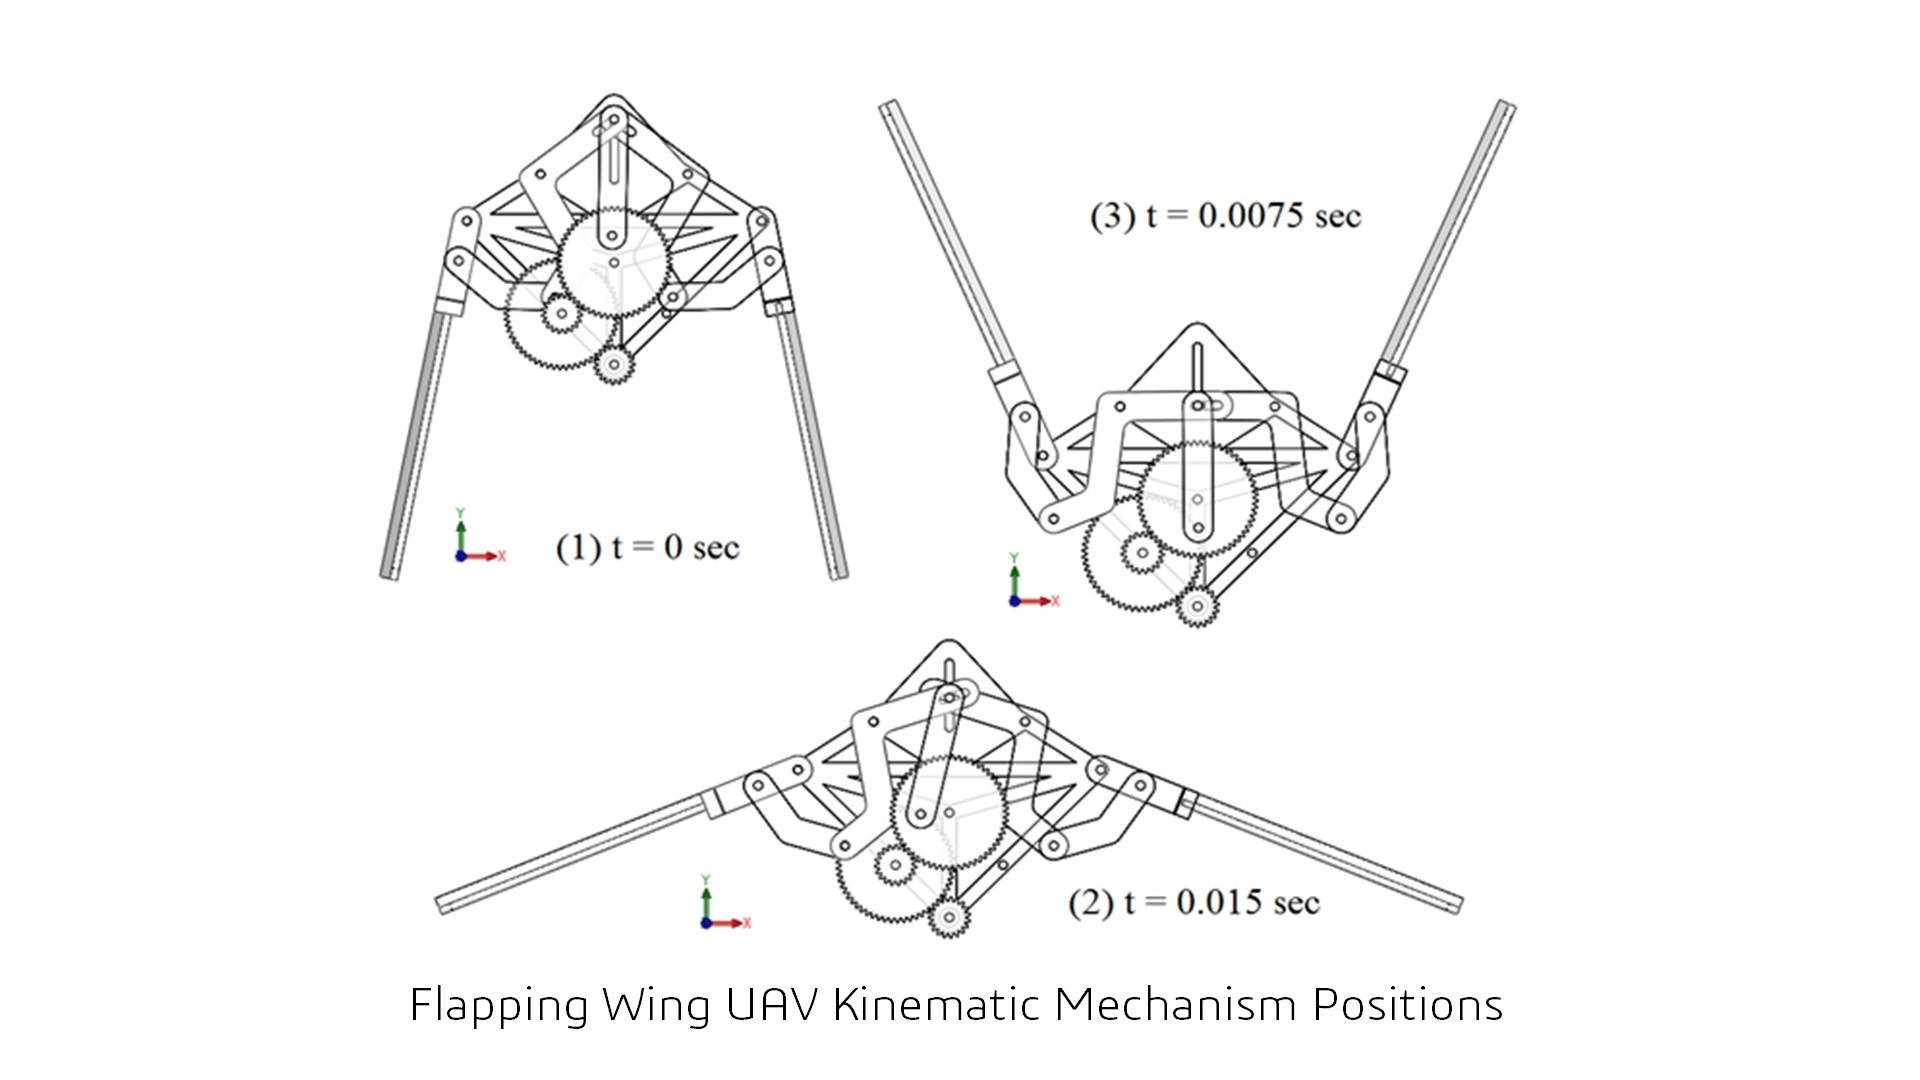 329733 Design Optimization And Fabrication Of The Drive Mechanism Of A Flapping Wing Uav on 4 Cylinder Aircraft Engine